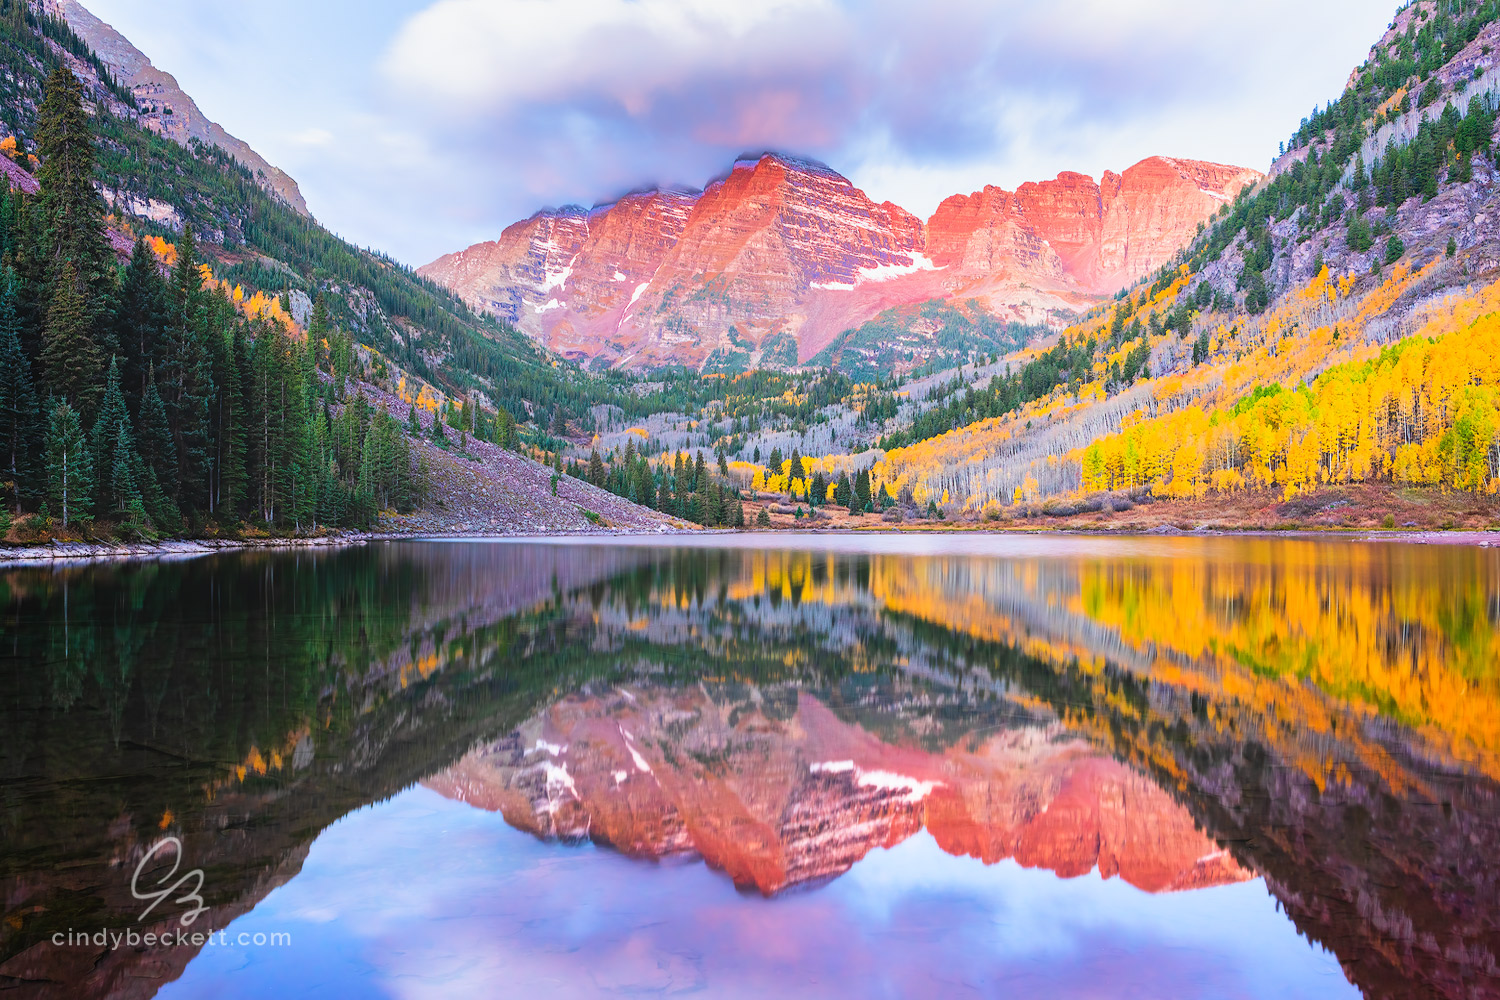 Dawn light over Maroon Bells mountain peaks with glass-like reflections in Maroon lake under colorful cloudy sky and with aspen leaves turning to fall colors.